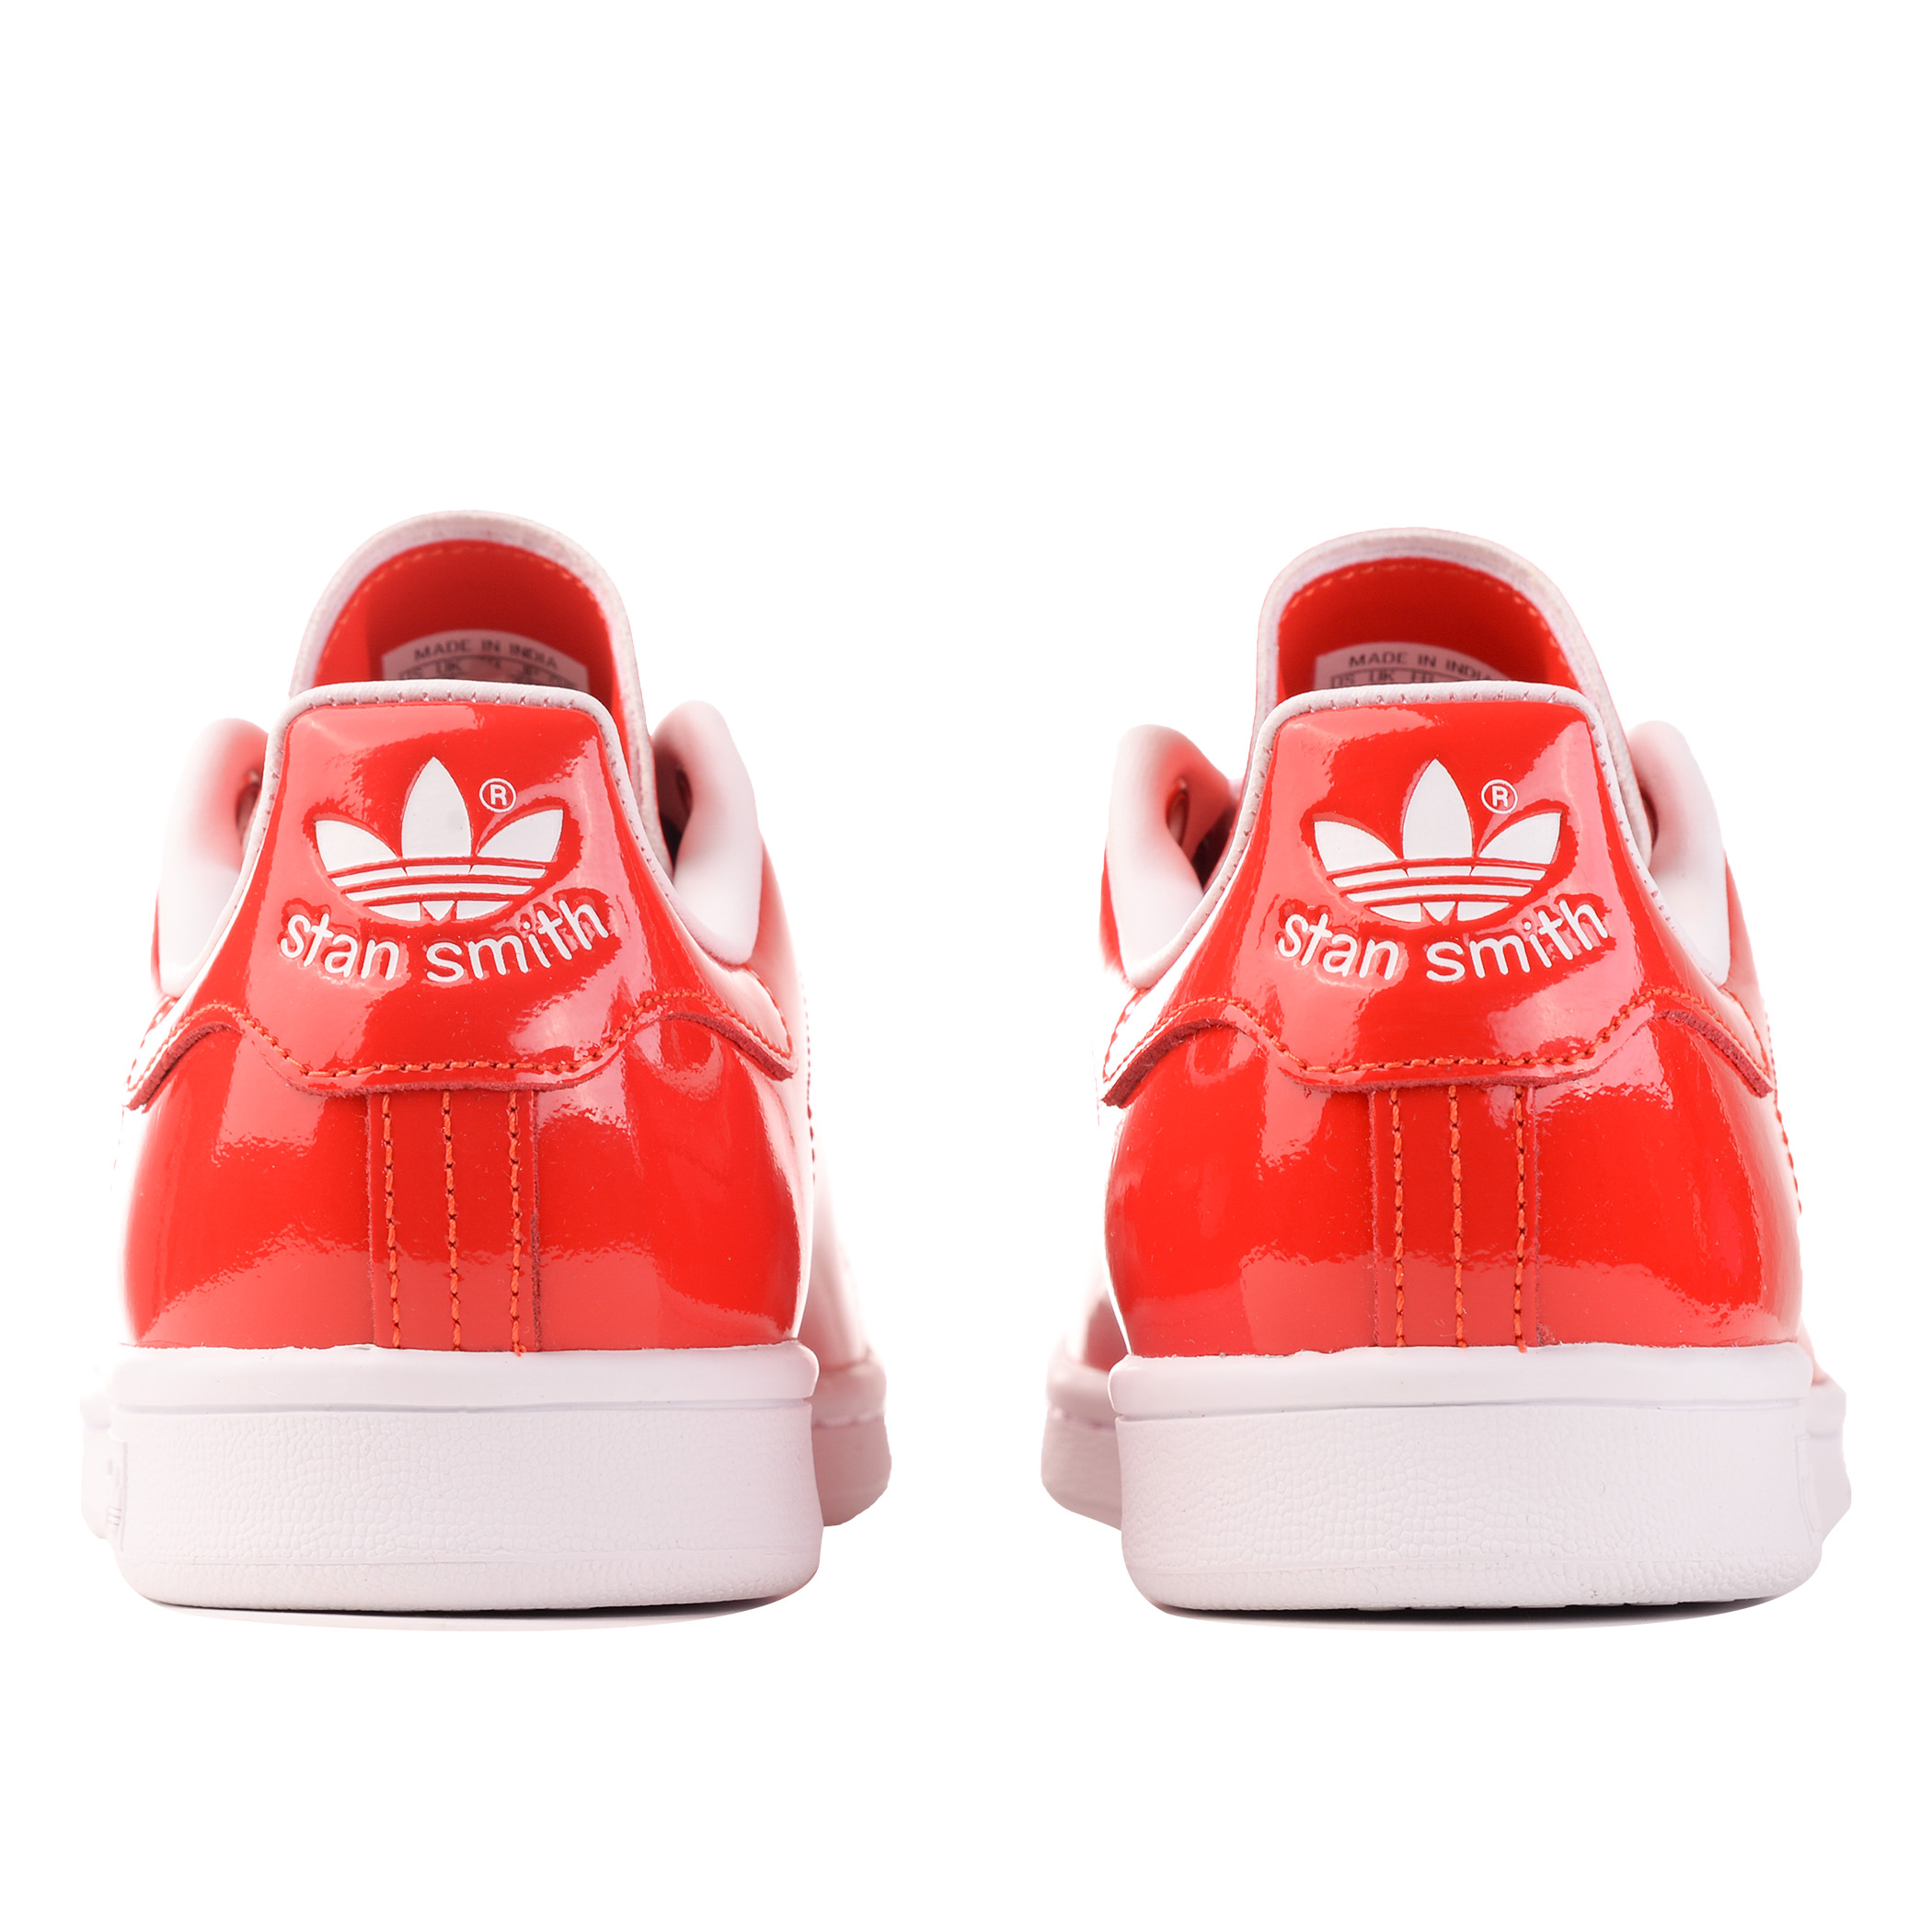 6a3a7185f44d Женские кроссовки adidas Originals Stan Smith Active Red/Ftwr White/Active  Red - фото